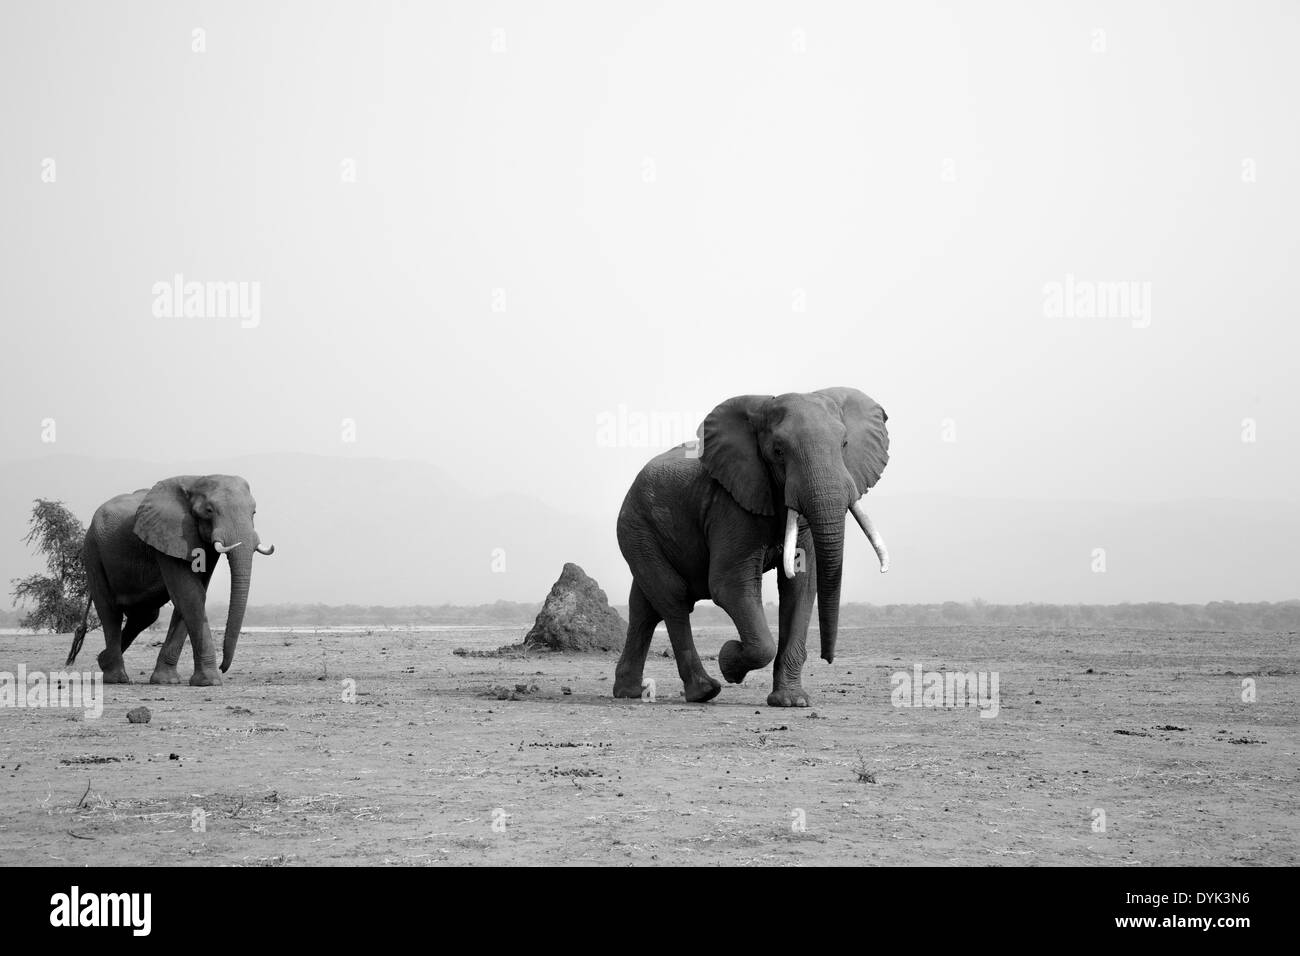 African Elephant bulls walking on dry plain - Stock Image